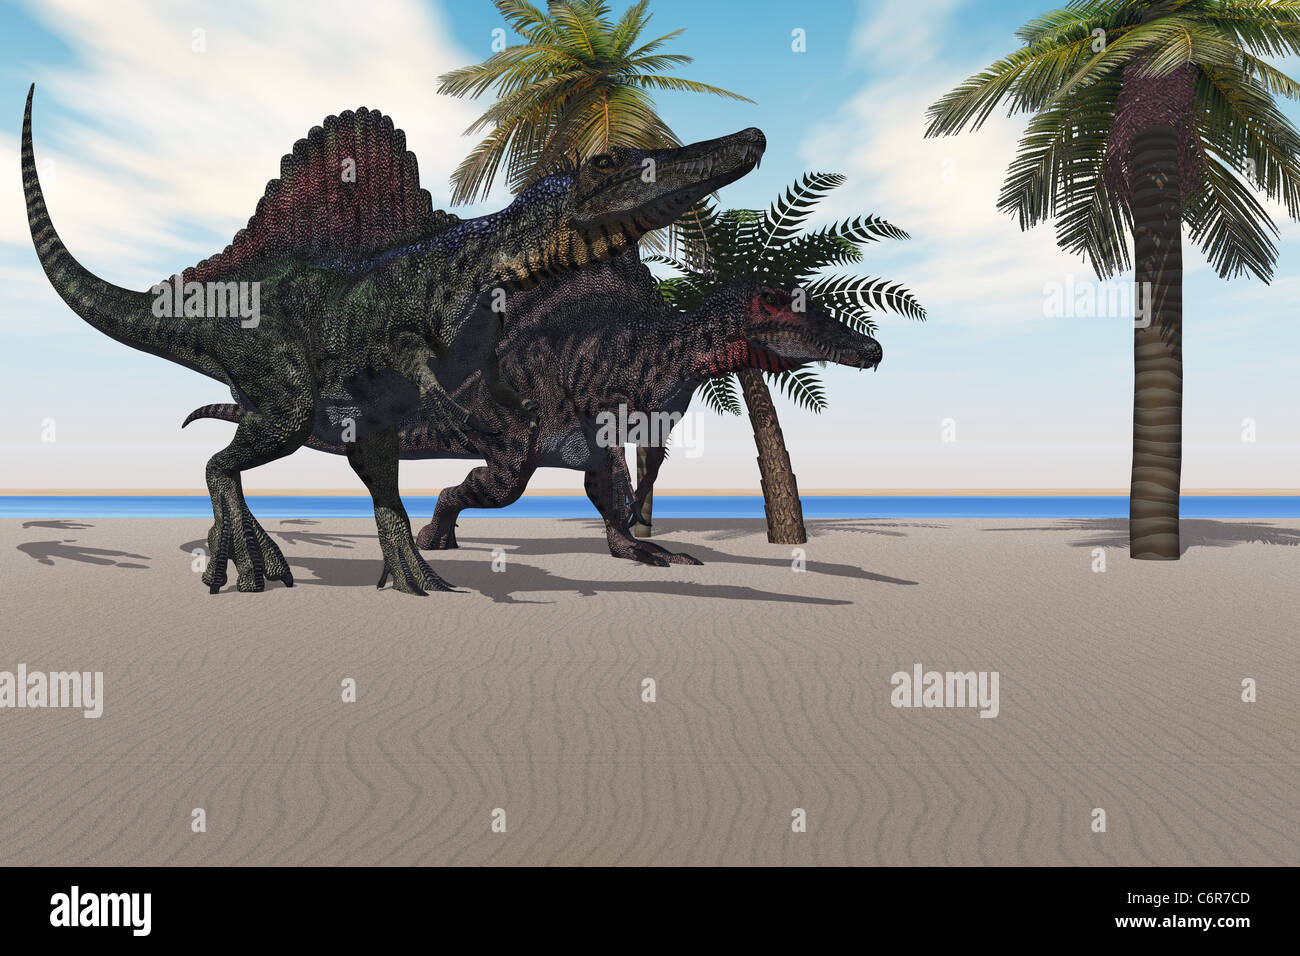 Two Spinosaurus dinosaurs amble down a beach looking for food. - Stock Image